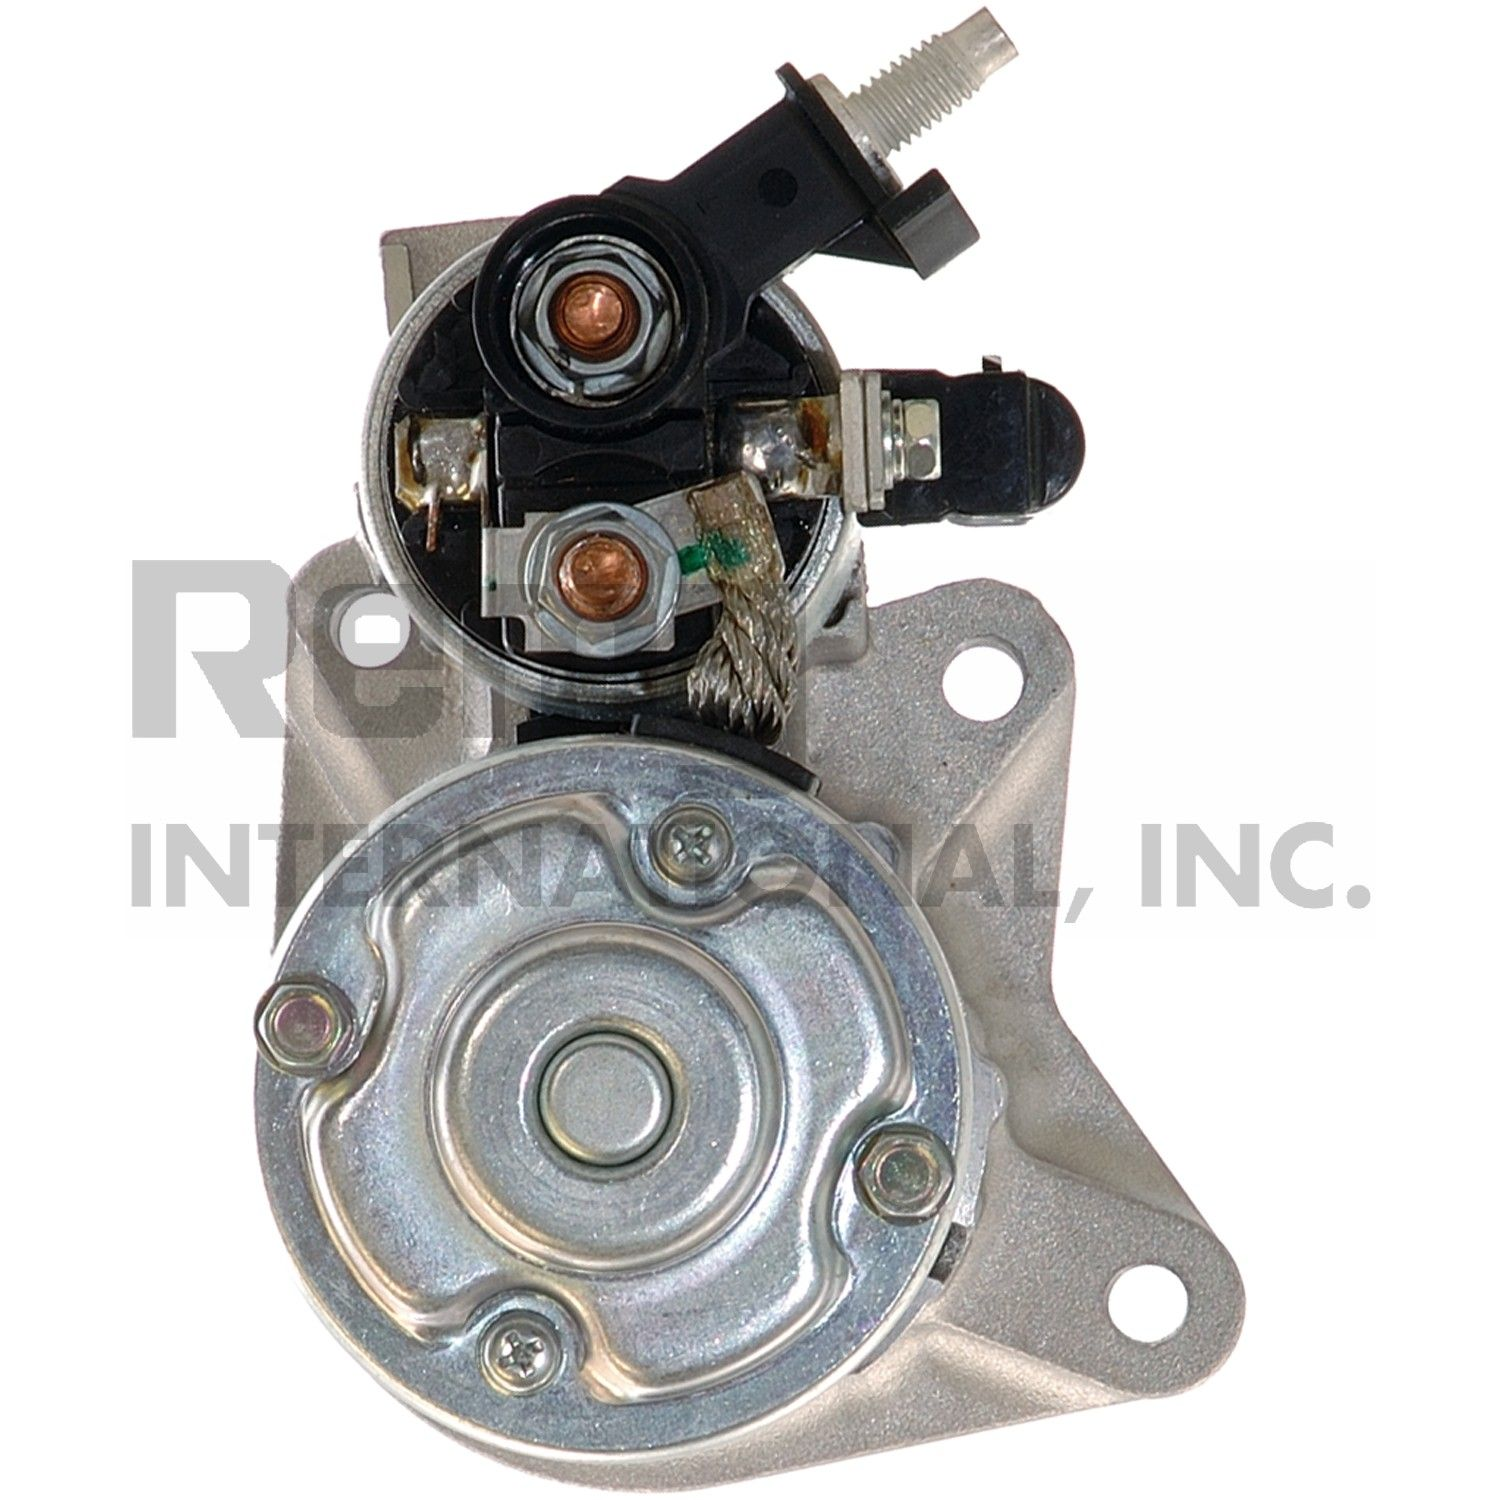 lx data liter dohc engine photo valve chrysler